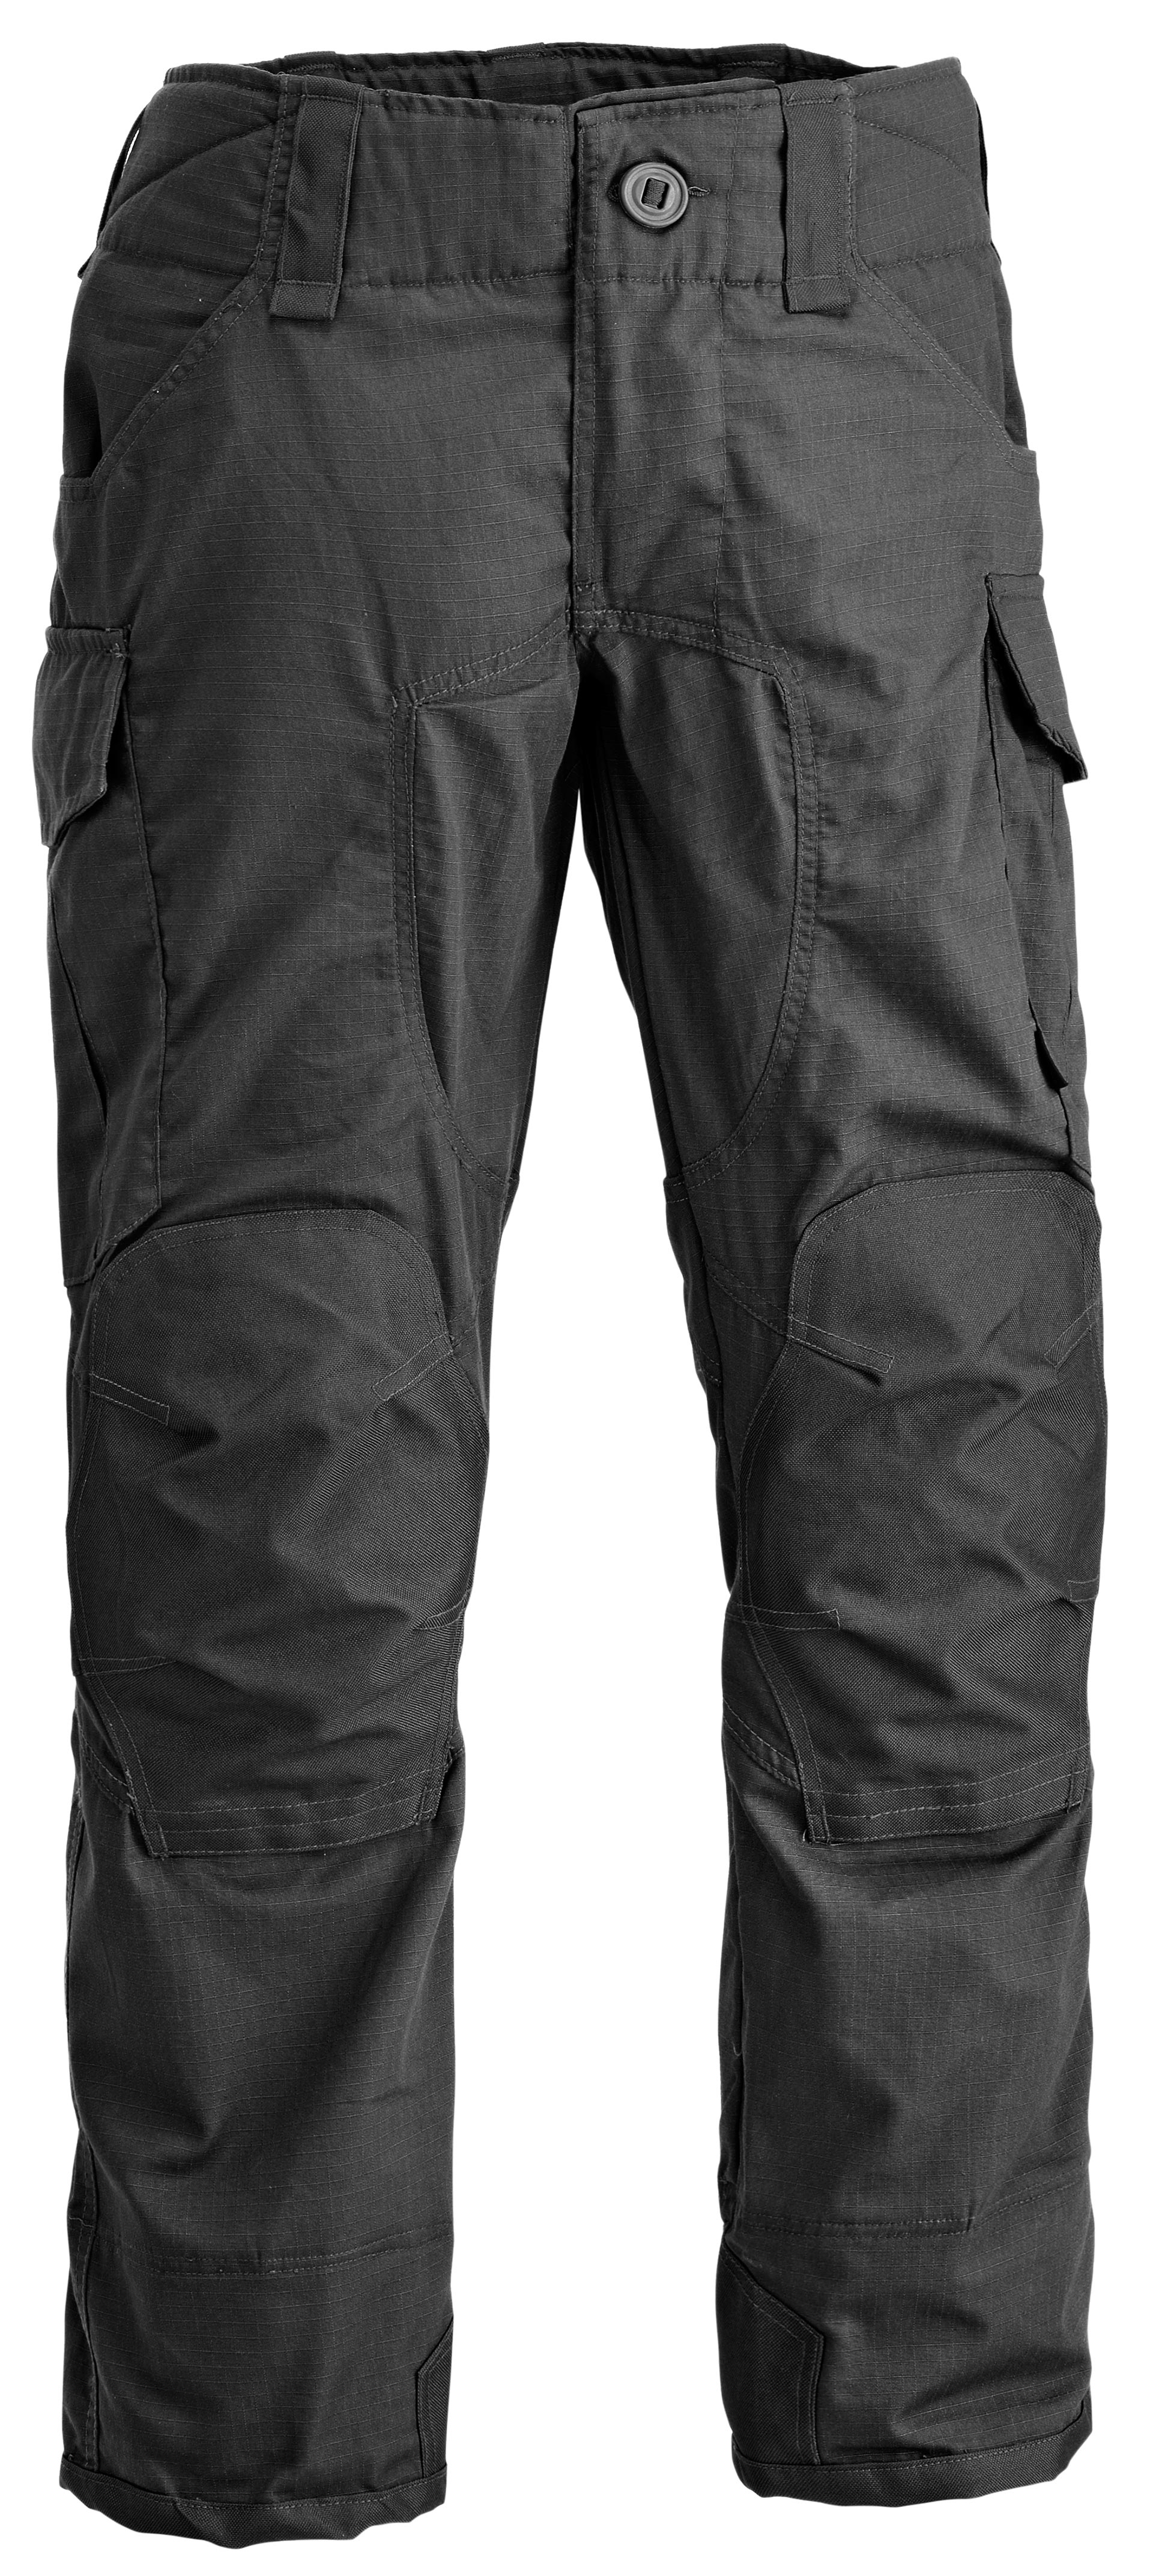 Defcon 5 Advanced Tactical Pants With Included Soft Knee